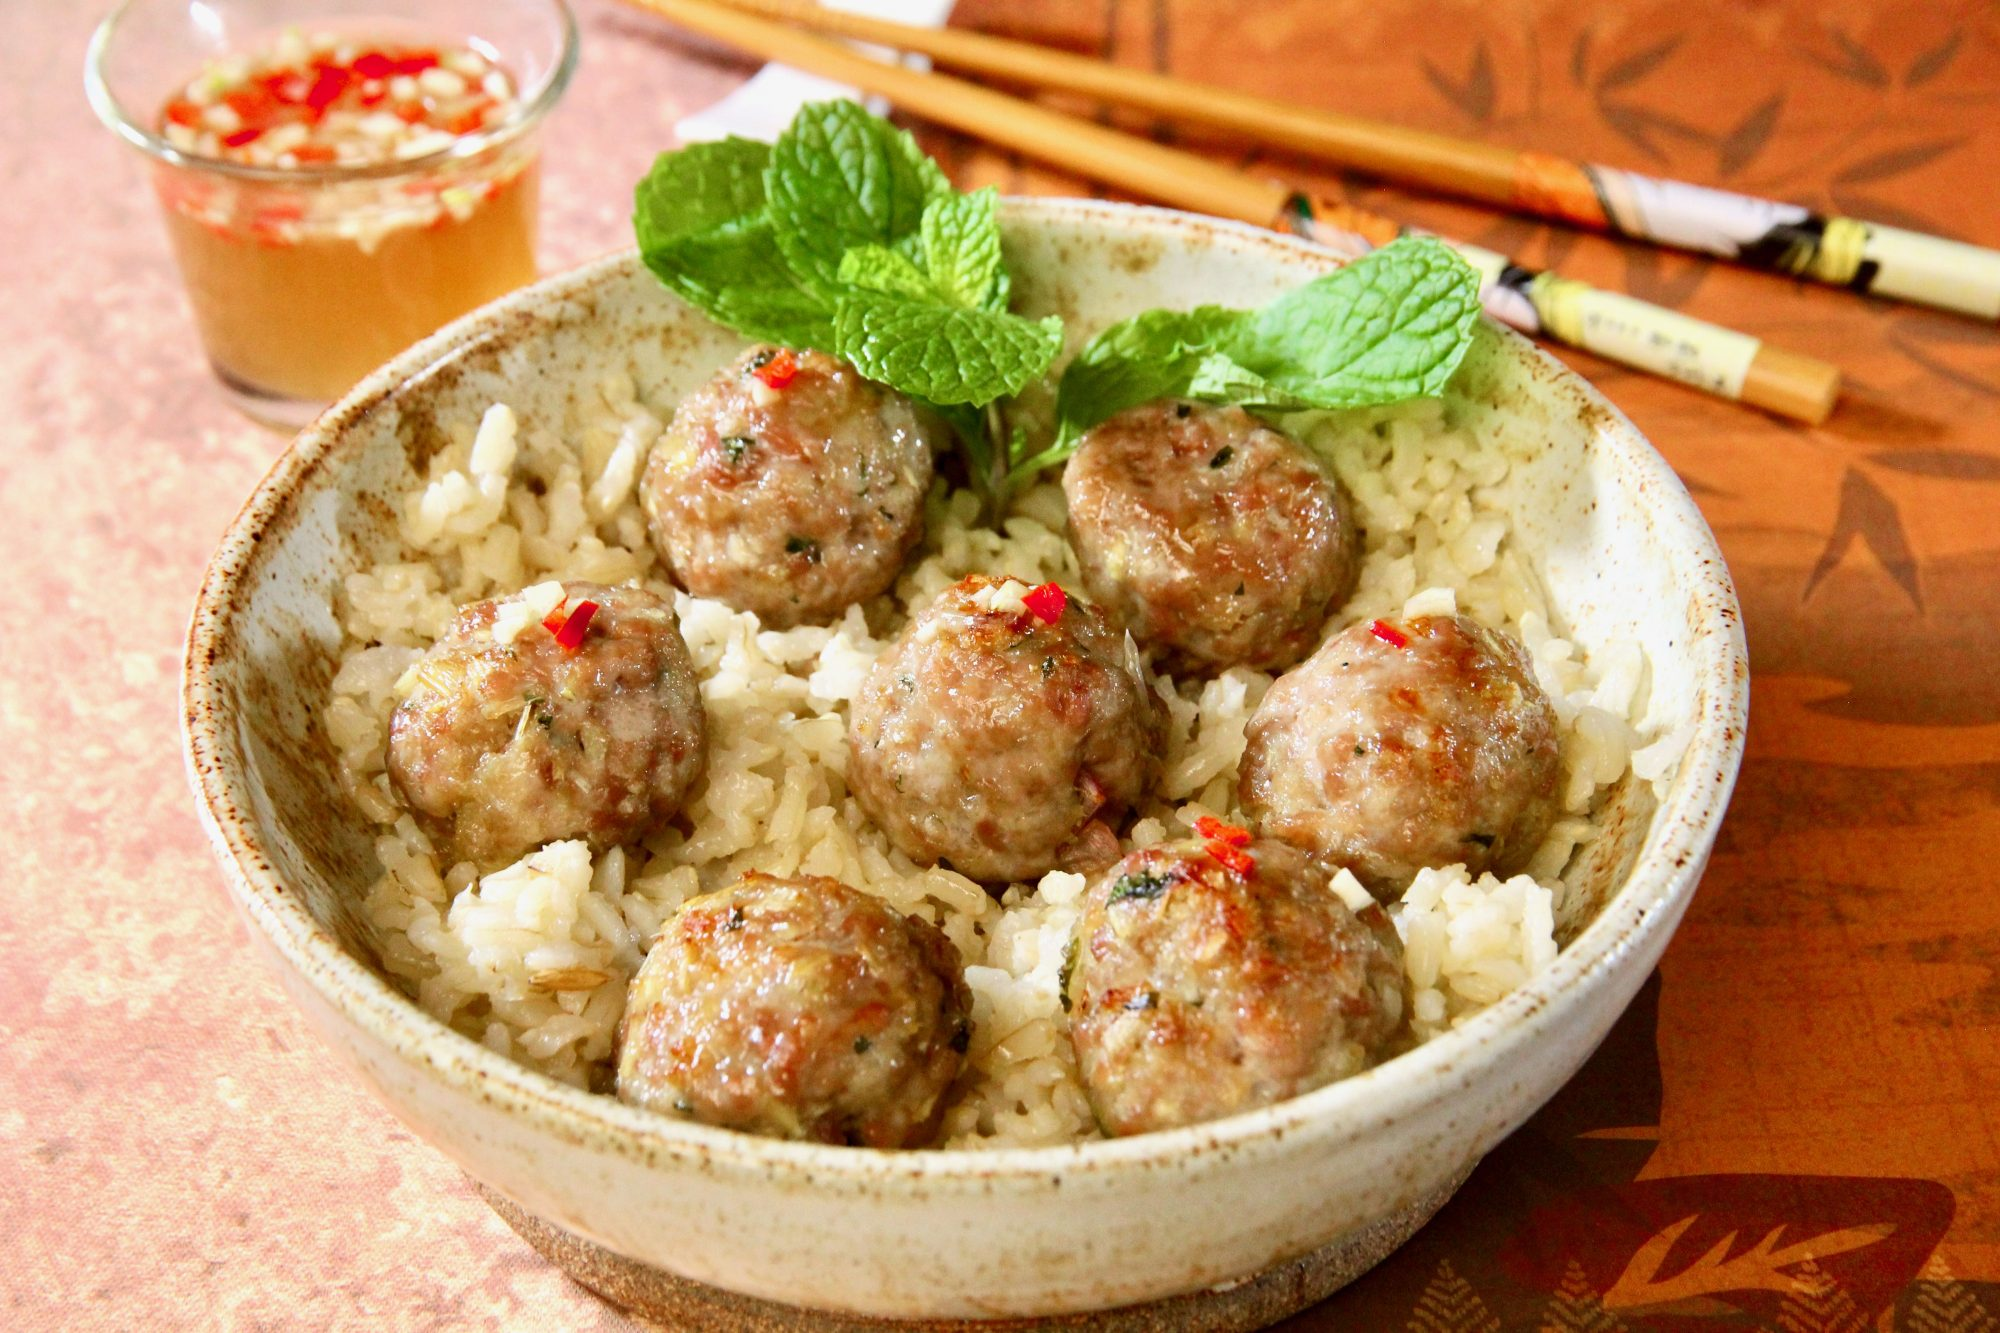 a bowl of baked pork meatballs arranged over rice, garnished with fresh mint